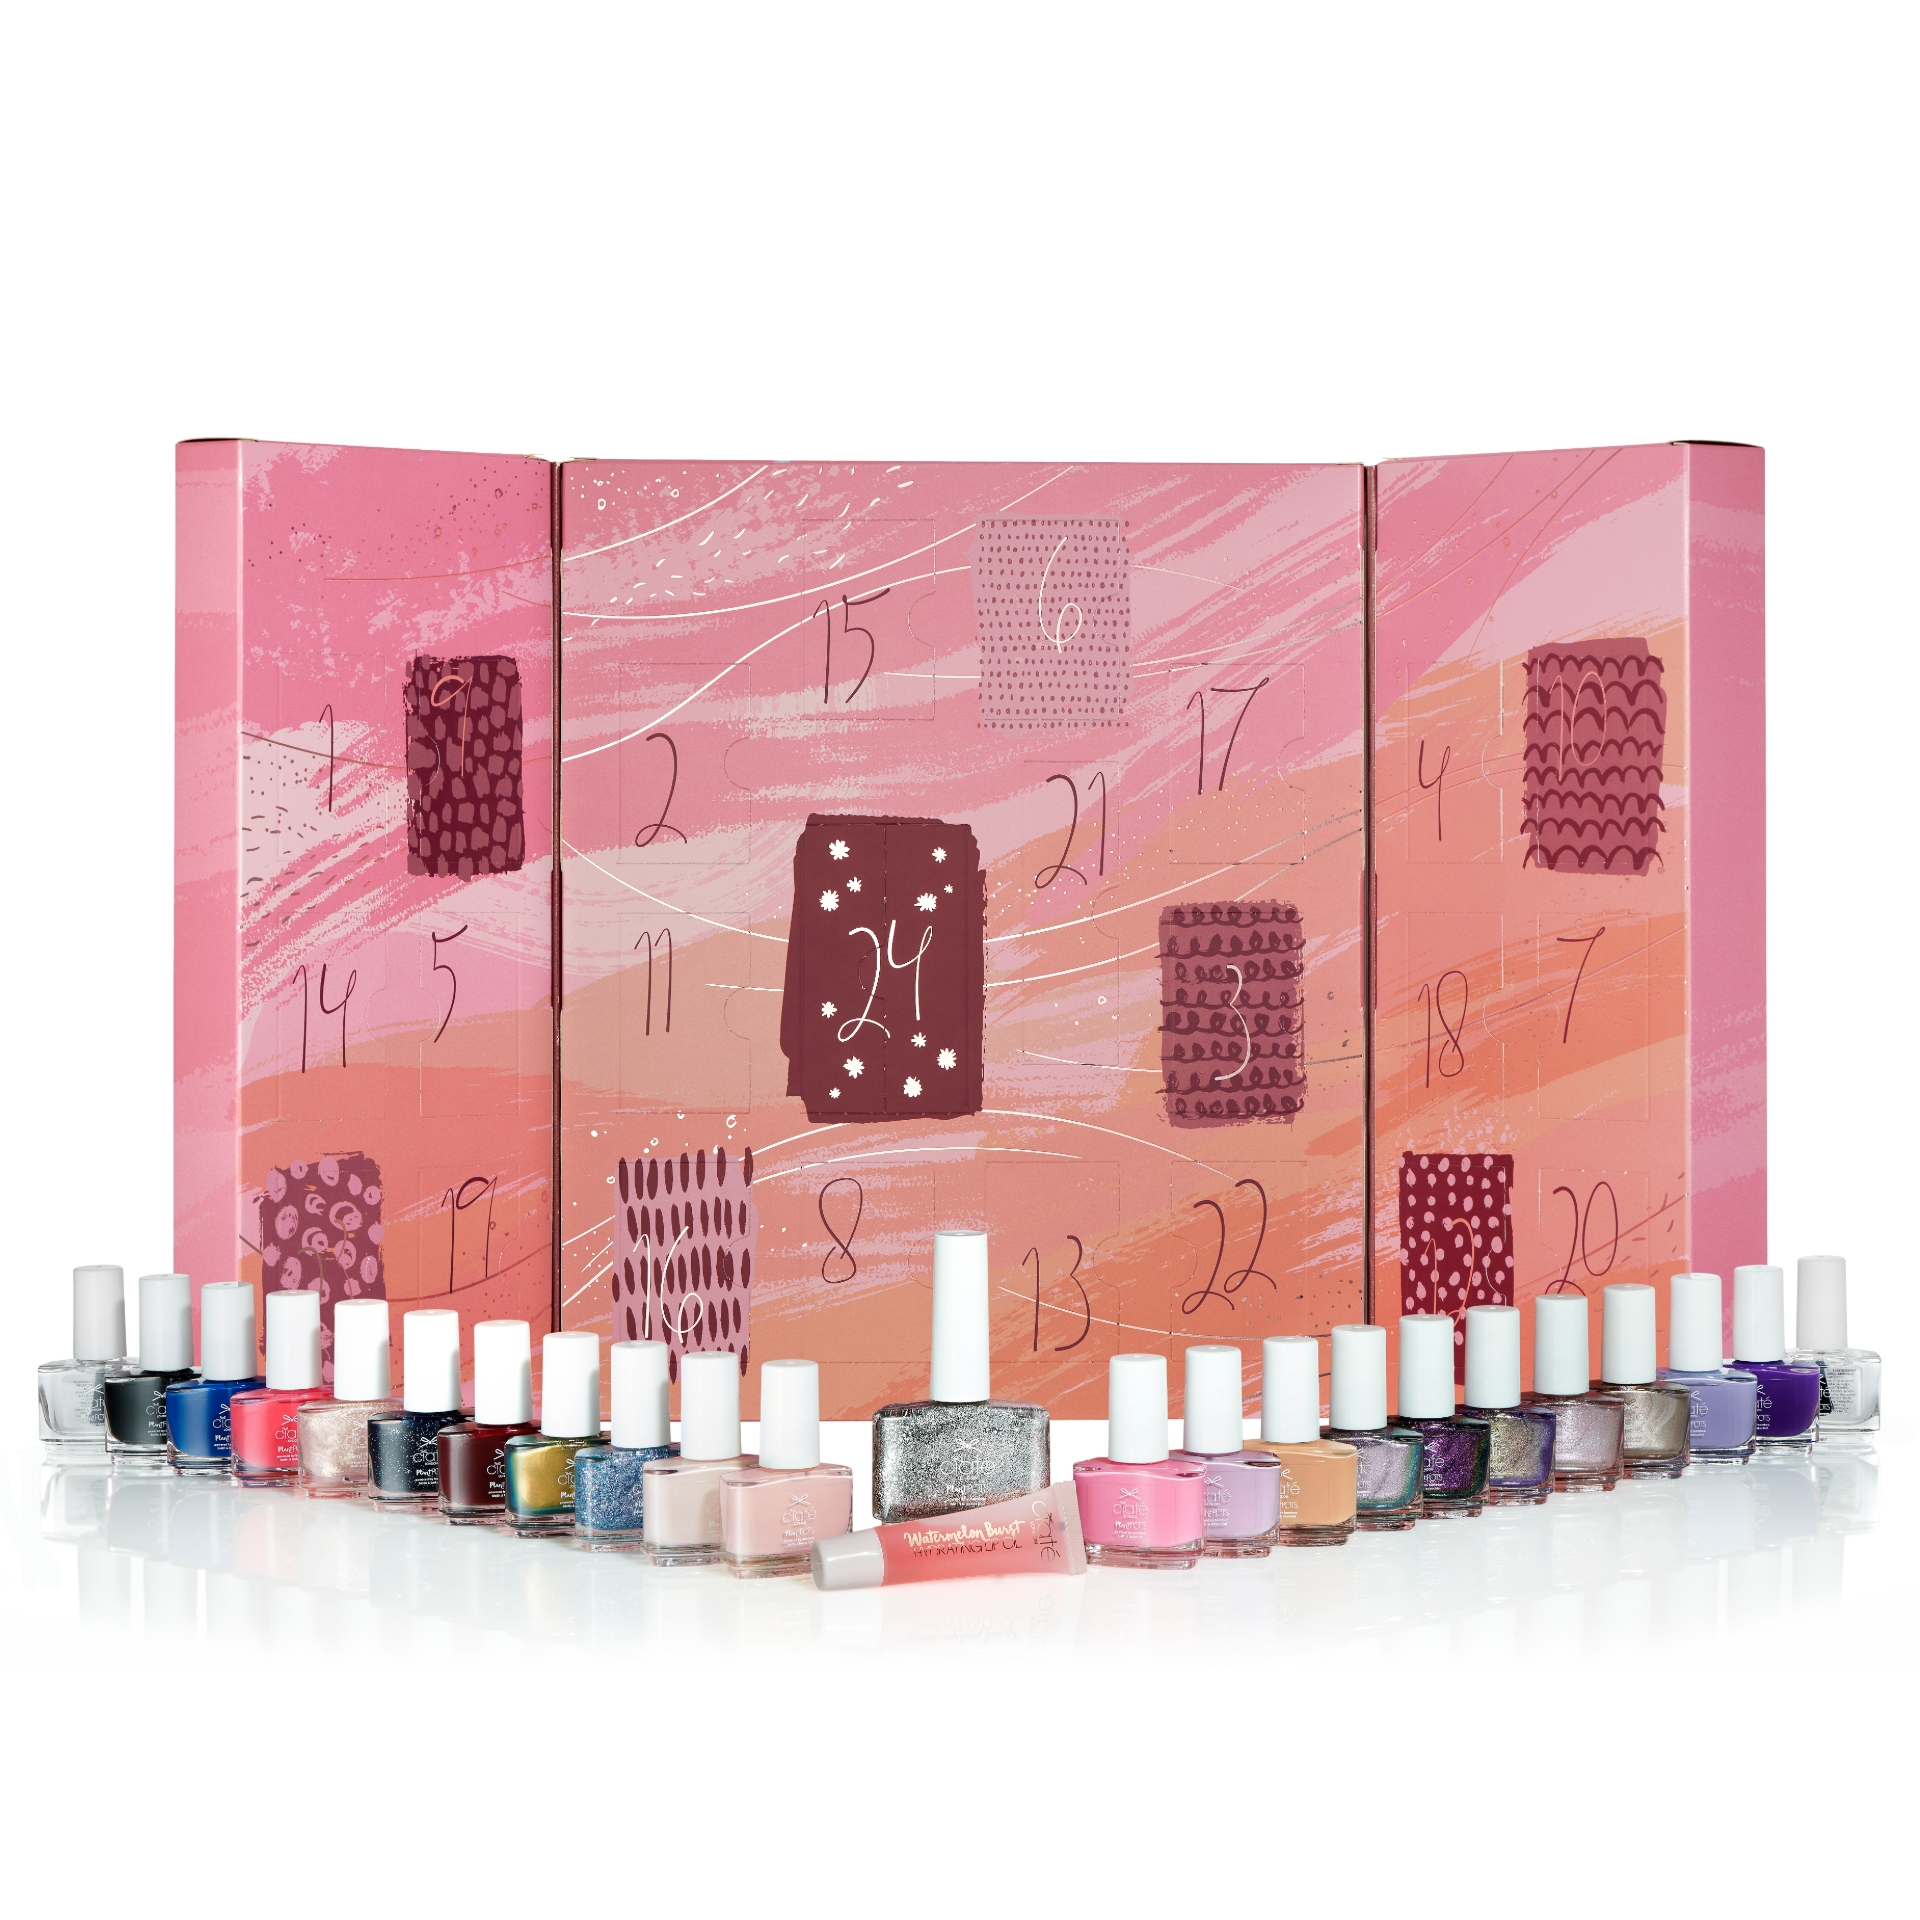 The Best Beauty Advent Calendars For 2020 Holiday And